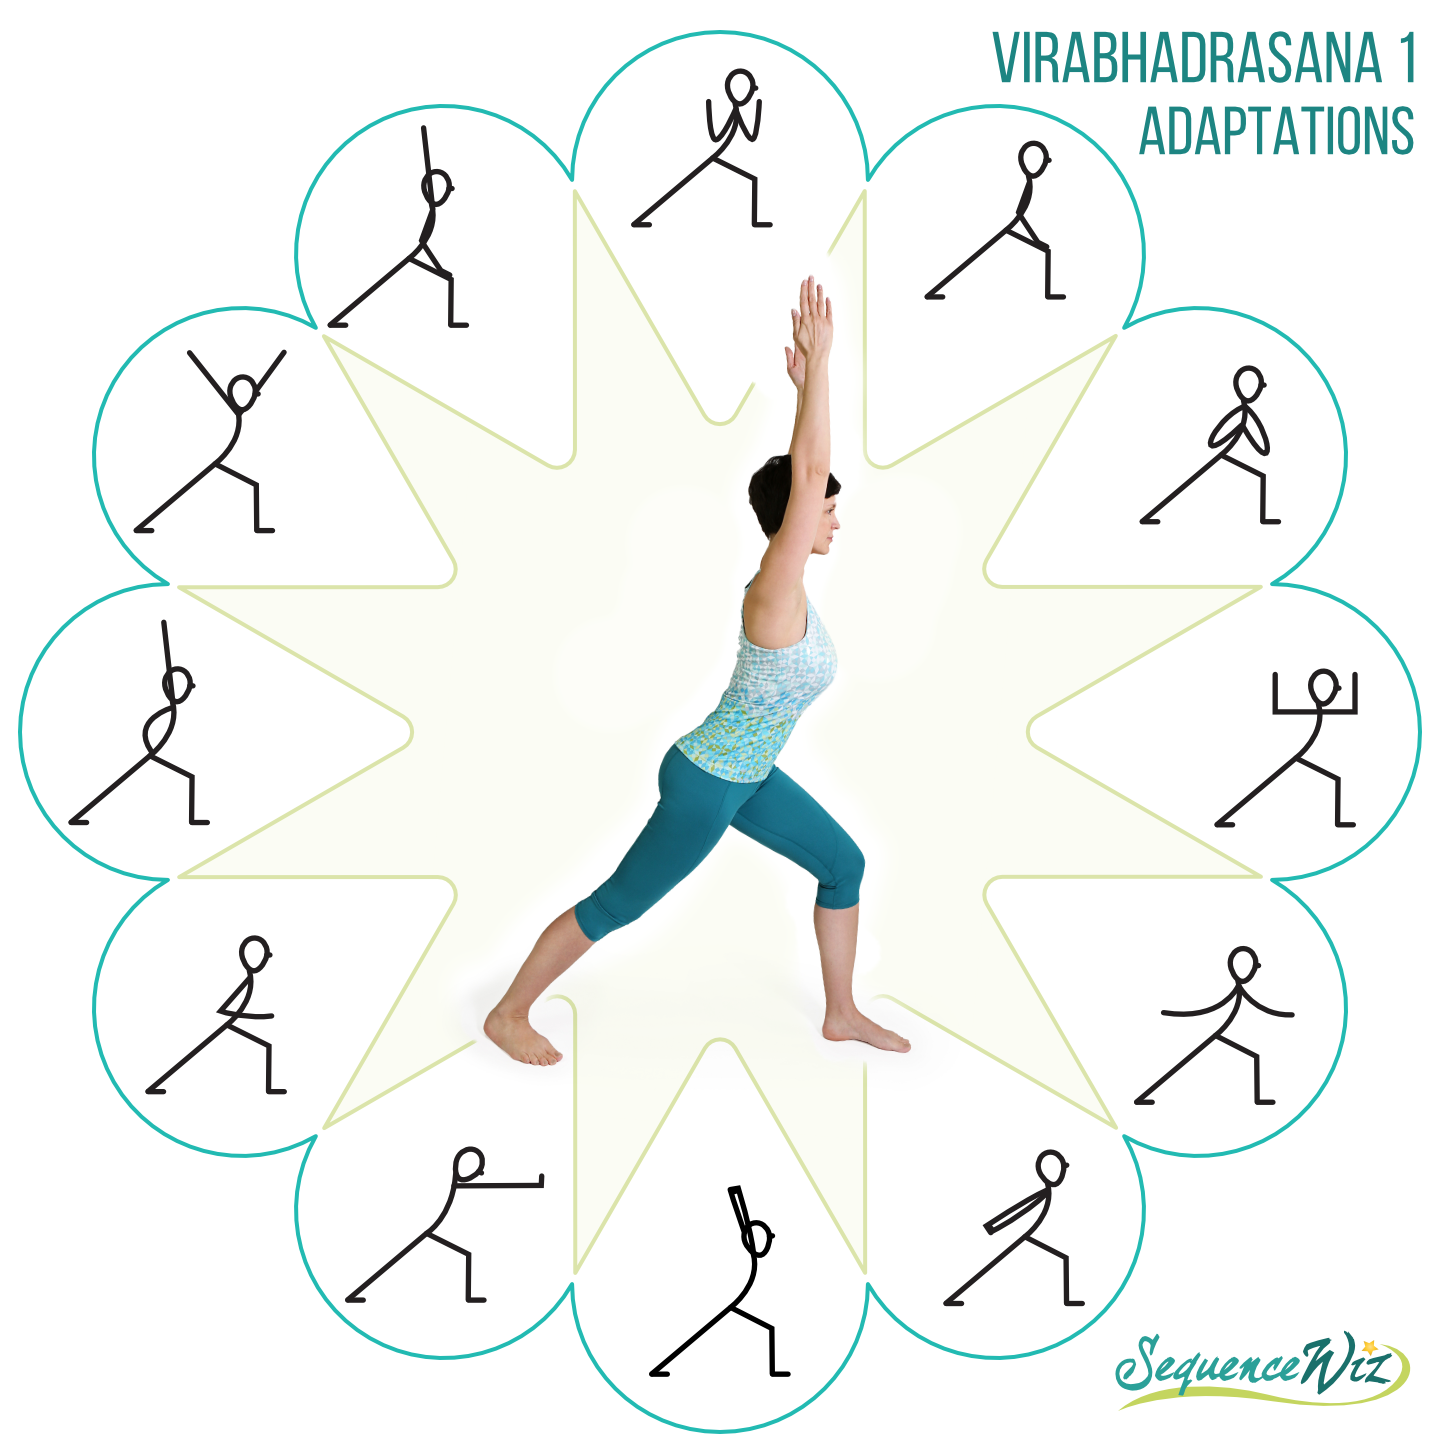 How to adapt yoga poses